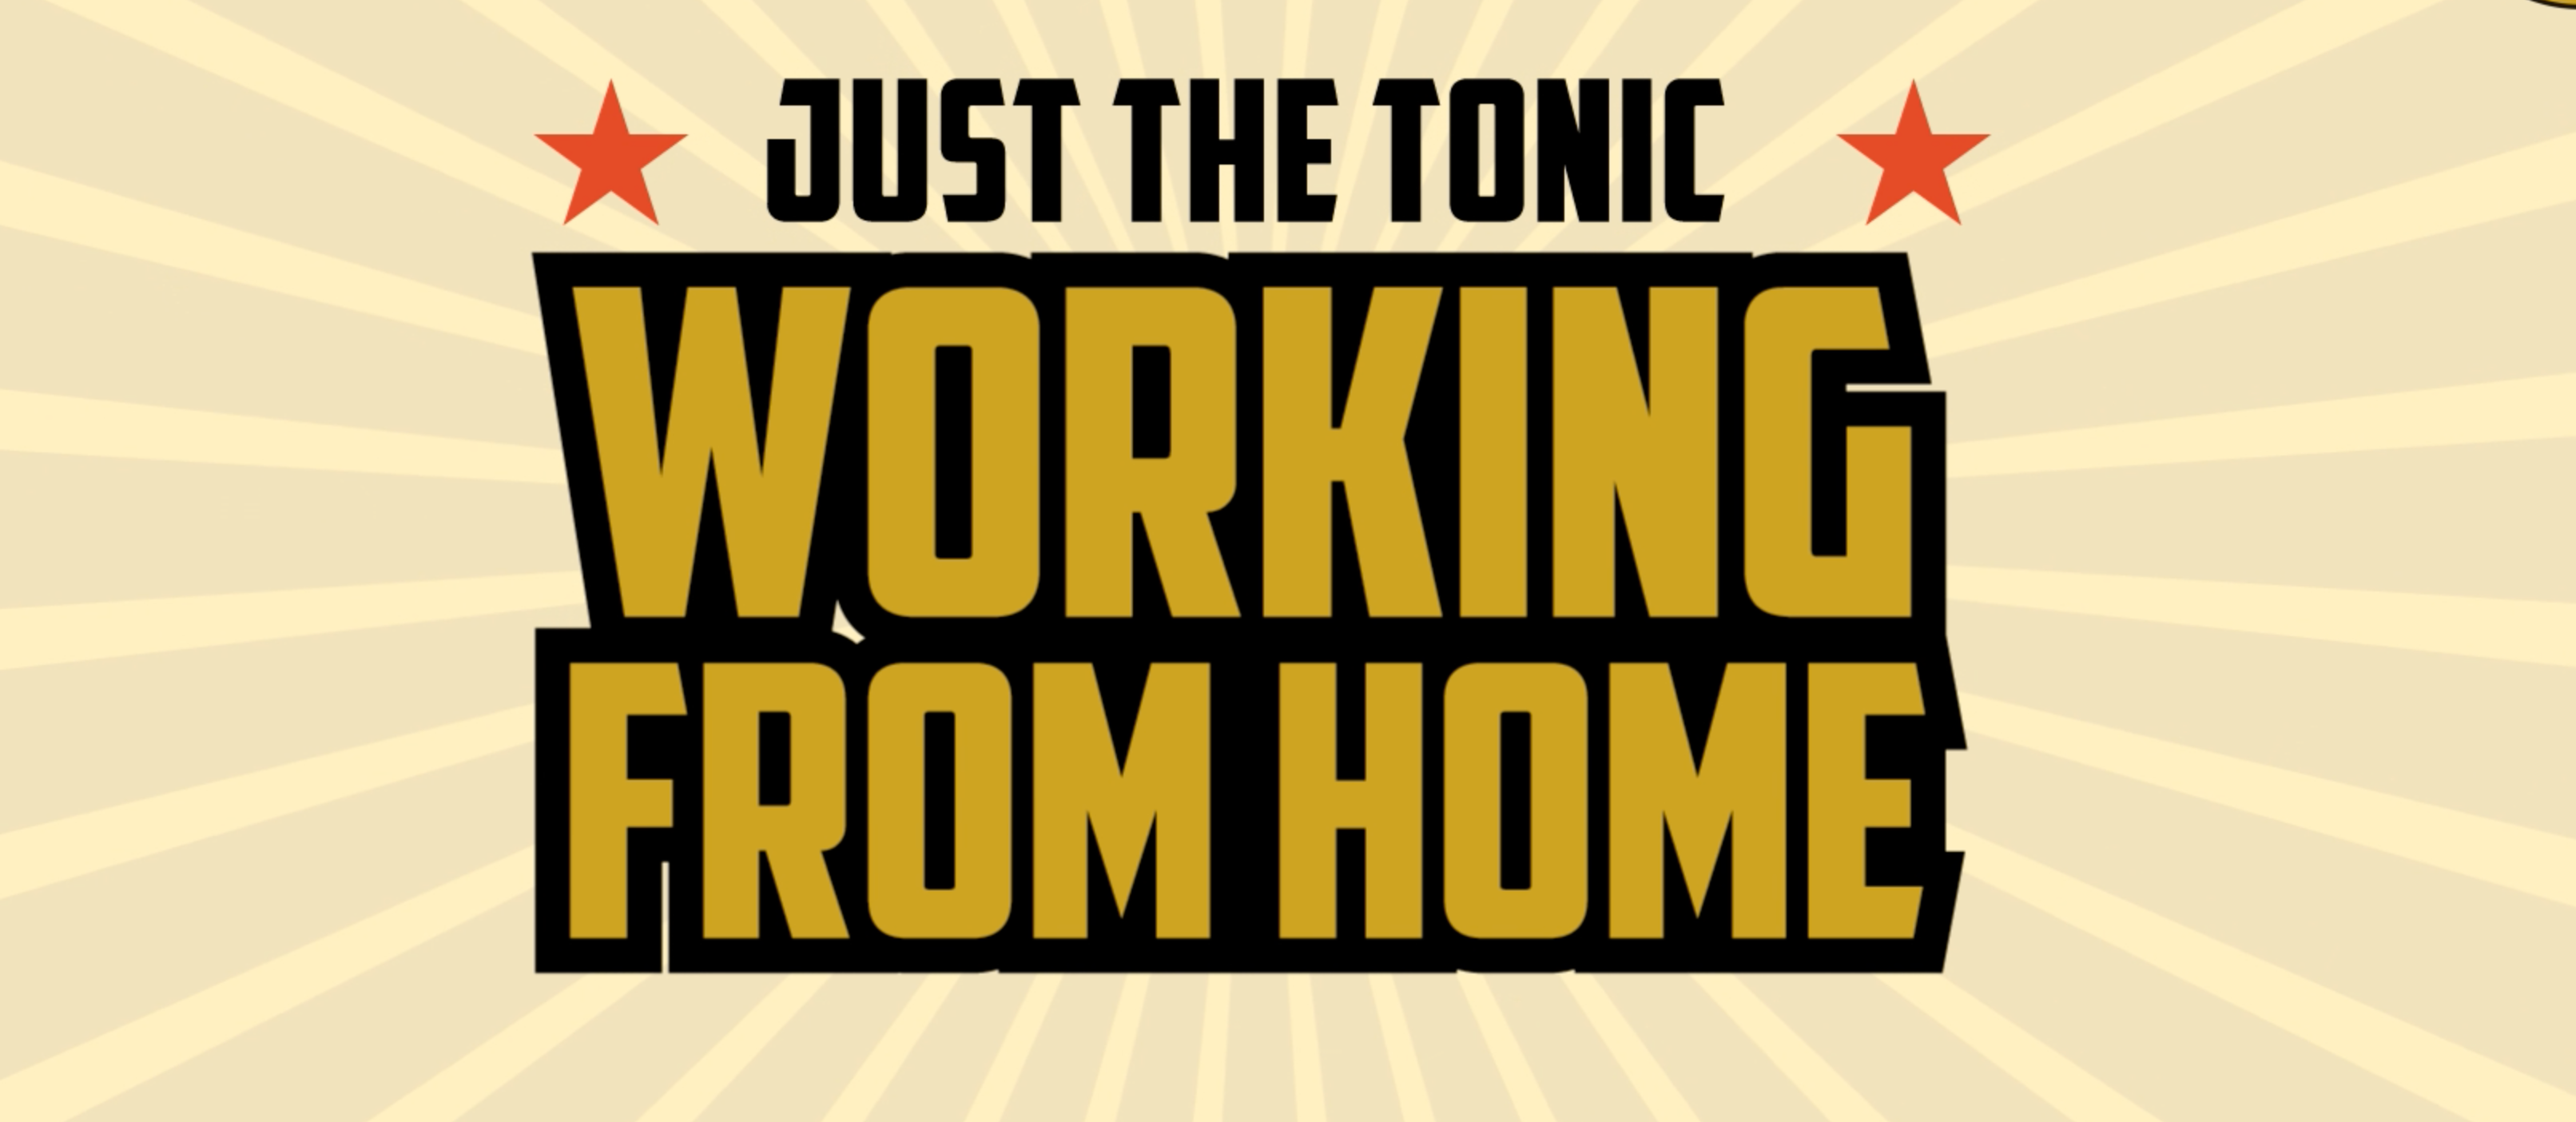 Just the Tonic Comedy Club - Working From Home - 2nd Pilot